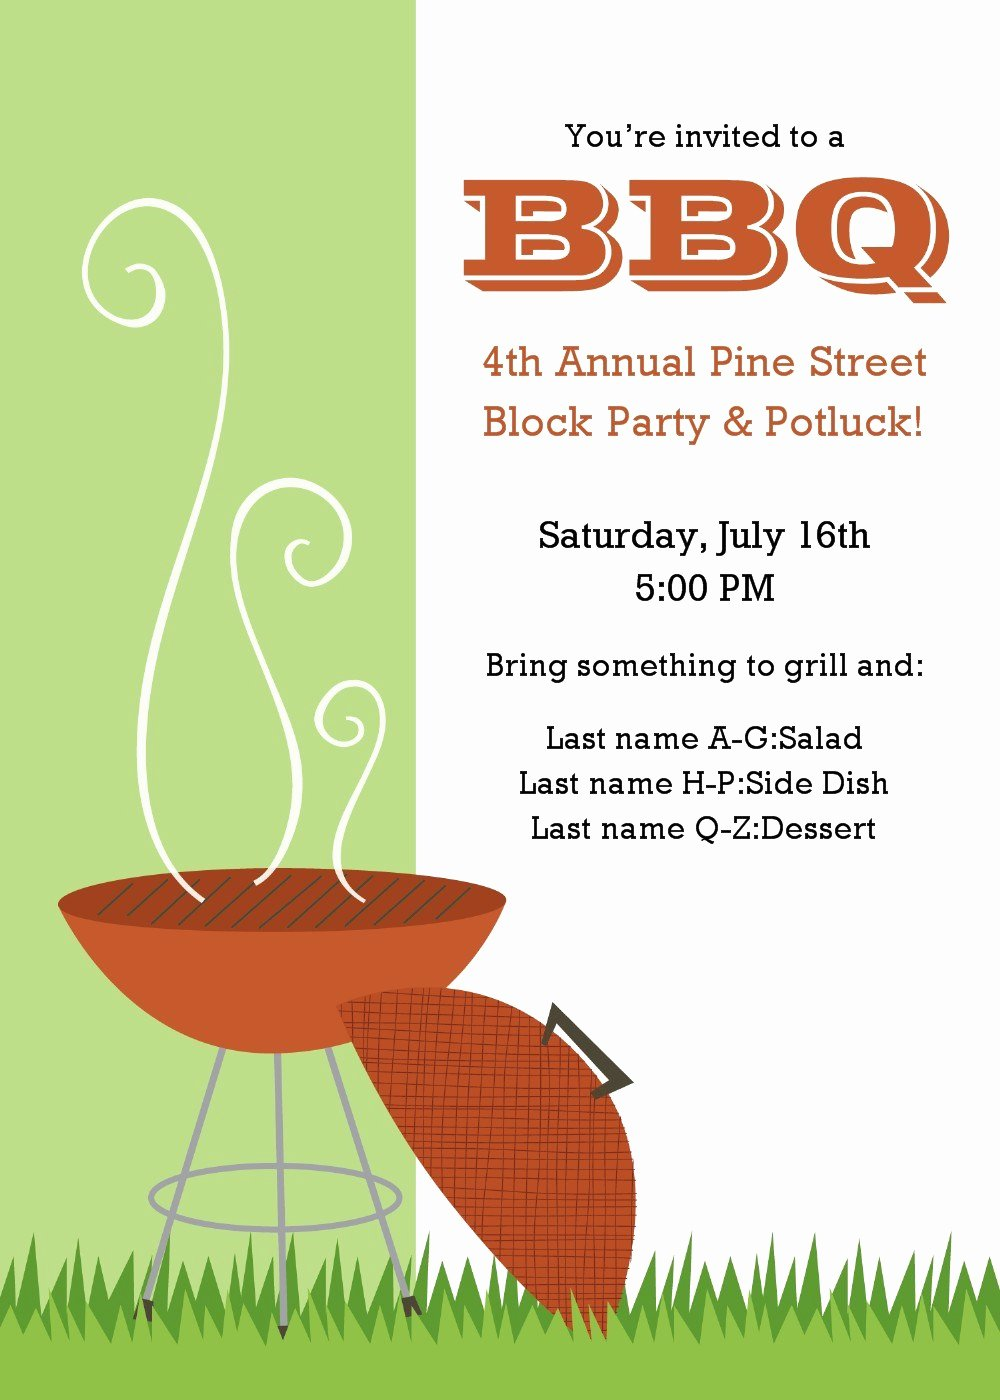 Free Bbq Flyer Template Best Of 20 Free Barbeque Flyer Templates Demplates